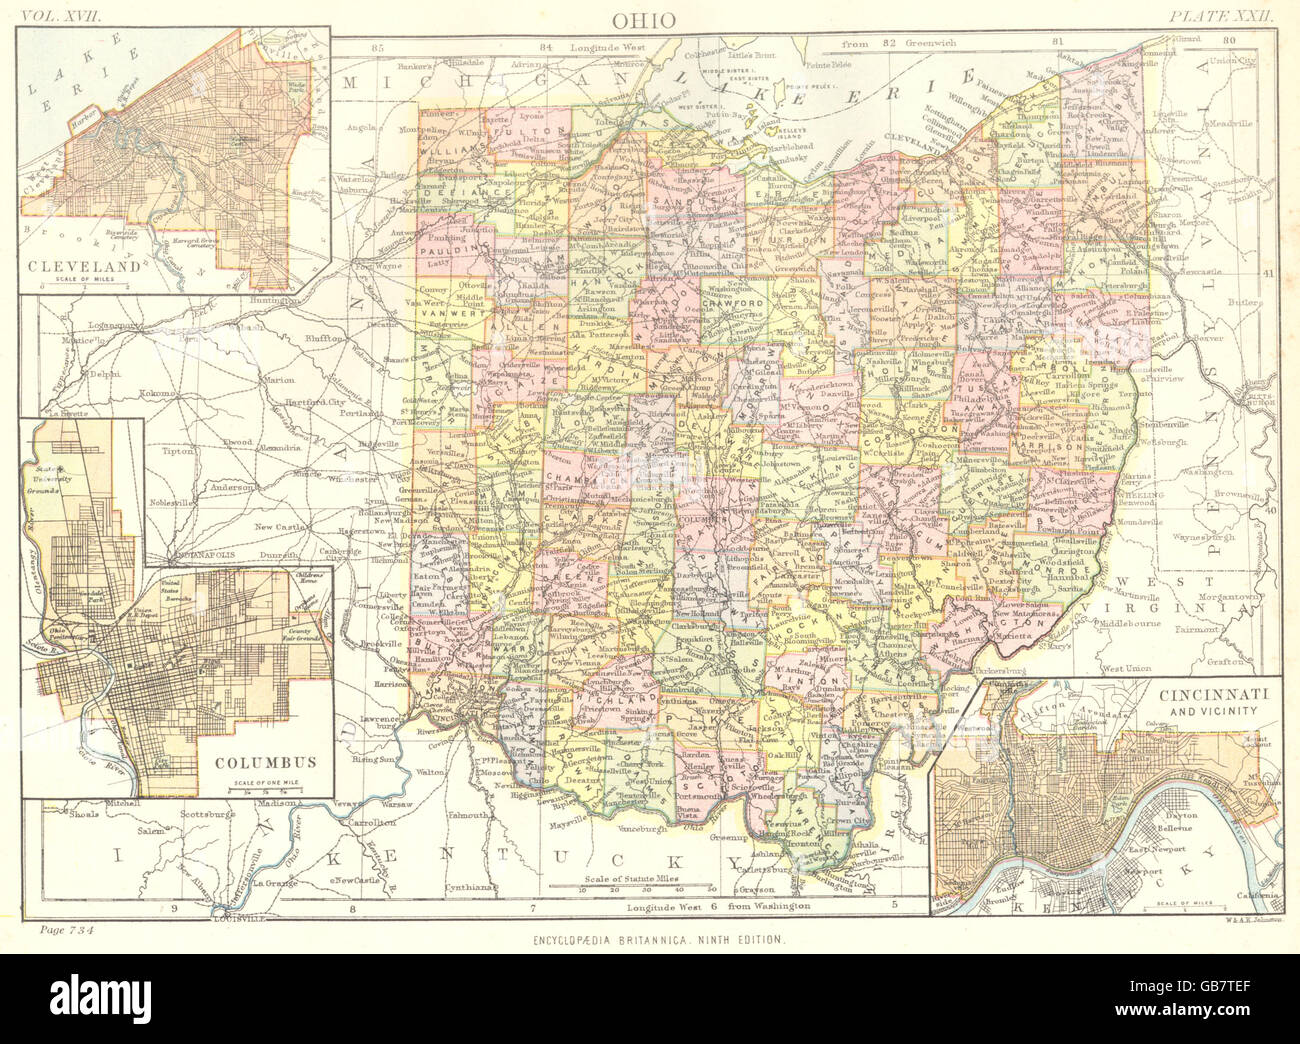 Cleveland Ohio Map Of Counties on map of virginia counties, map of greene counties, map of ohio including cities, map of mobile alabama counties, map of texas counties, map cleveland oh, map of new york city counties, map ohio ohio counties, map of new jersey counties, map of michigan counties, map of st. louis missouri counties, map of akron ohio and surrounding area, names of counties in columbus ohio counties, map of kentucky counties, map of kansas city kansas counties, map of california counties, map of northeast ohio cities, map of florida counties,